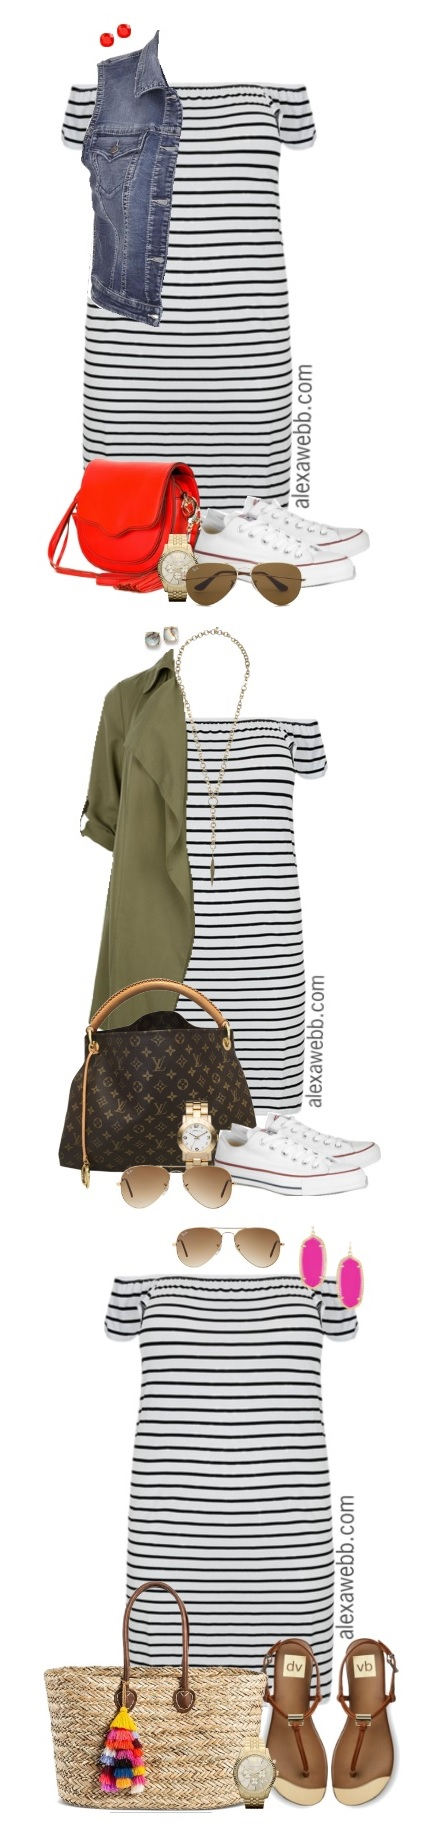 Plus Size Striped Dress Outfits - Plus Size Fashion - alexawebb.com